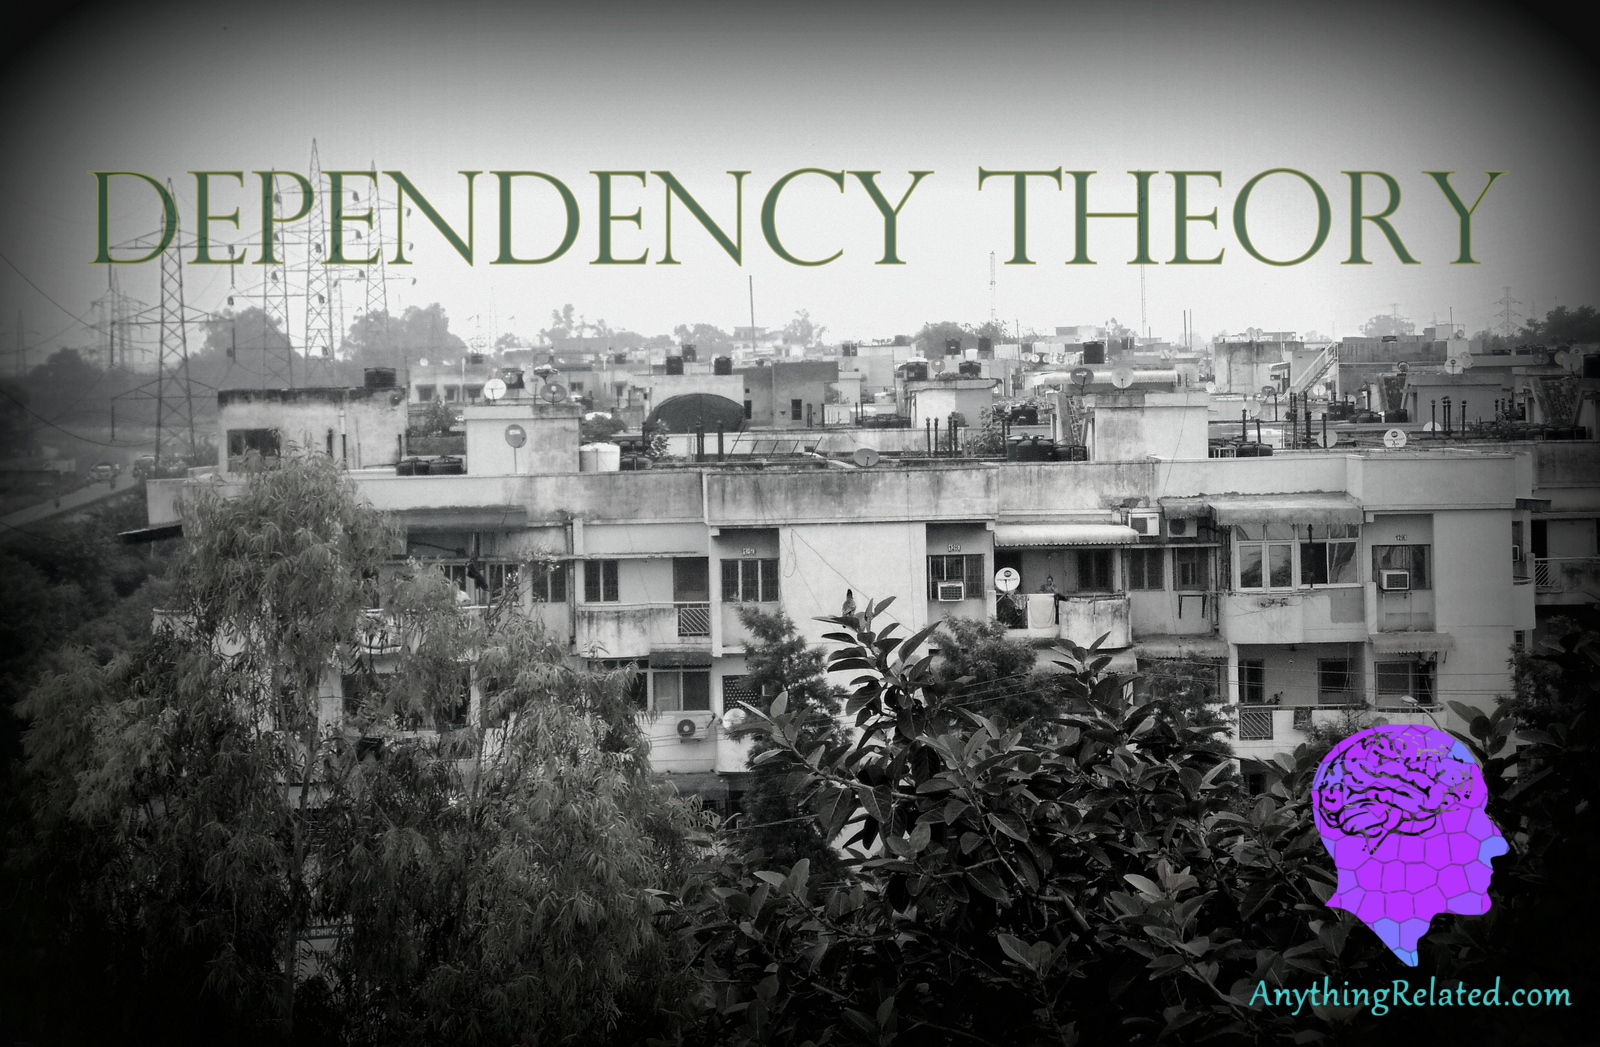 modernization and dependency theory This standoff characterizes discussions of modernization in the post-rostovian  age in the  dependency theory reversed the optics of rostovian theory,  viewing.